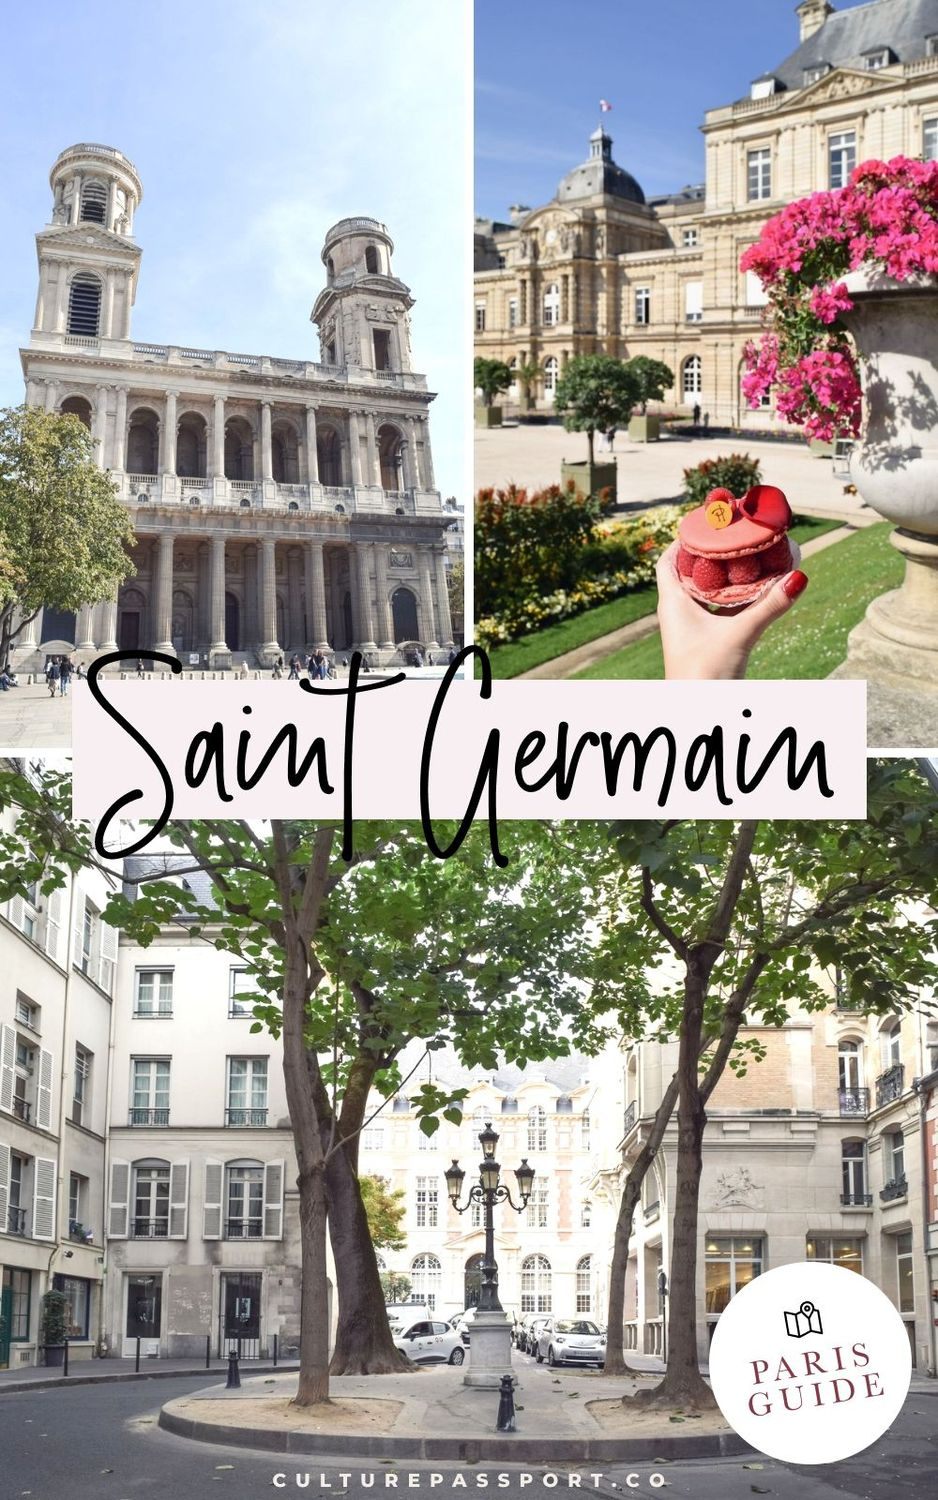 Saint Germain Des Pres Paris Guide to the 6th Arrondissement